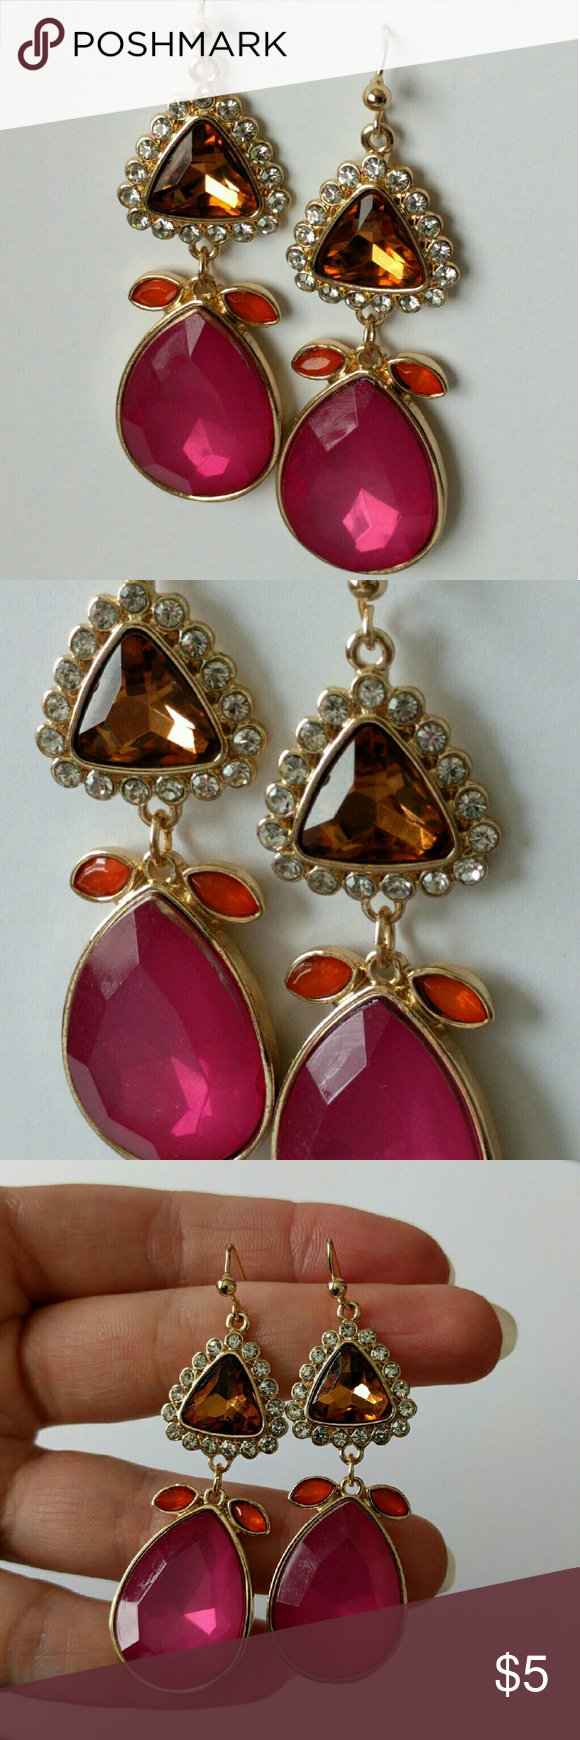 """Sparkling sorbet drop earrings Color and sparkle!  Candy-hued cabochons are topped off by crystal accents for a look that's unforgettable!  Worn once for an afternoon and in excellent condition!  Beautifully made with a good weight.  About 2.5"""" long.  Price firm and extremely reasonable, but bundle and save 10%! Shoplately Jewelry Earrings"""